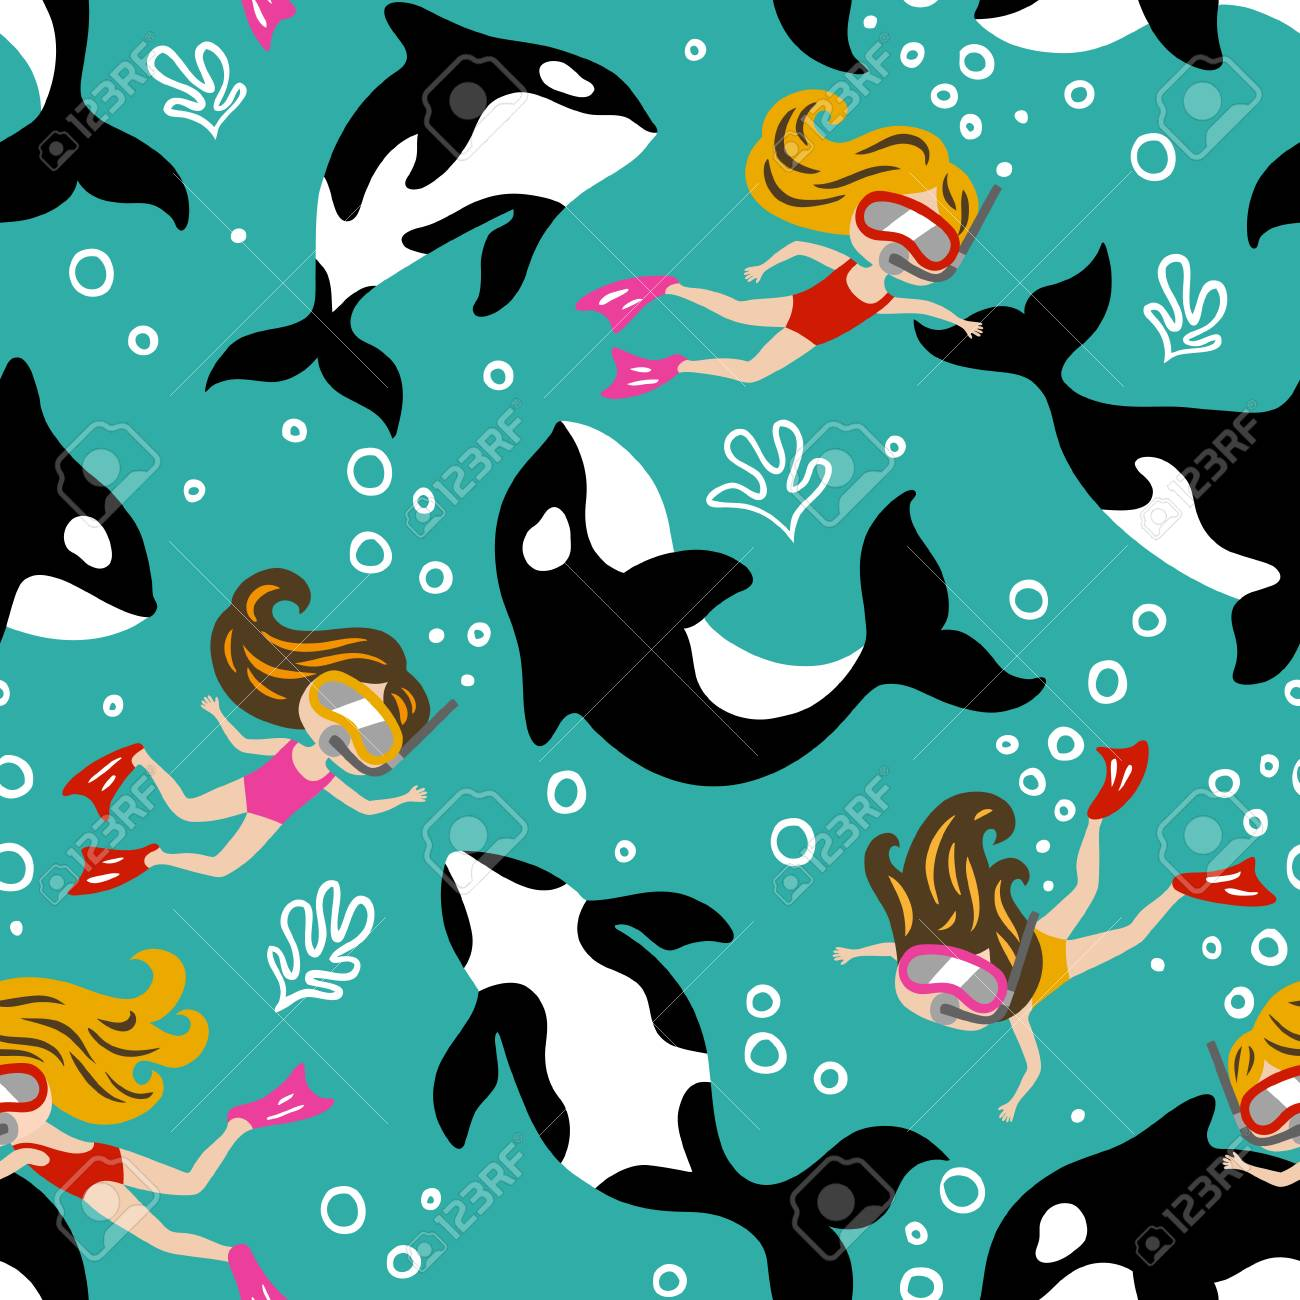 hand drawn seamless vector pattern with cute dolphins and diving.. royalty  free cliparts, vectors, and stock illustration. image 103604726.  123rf